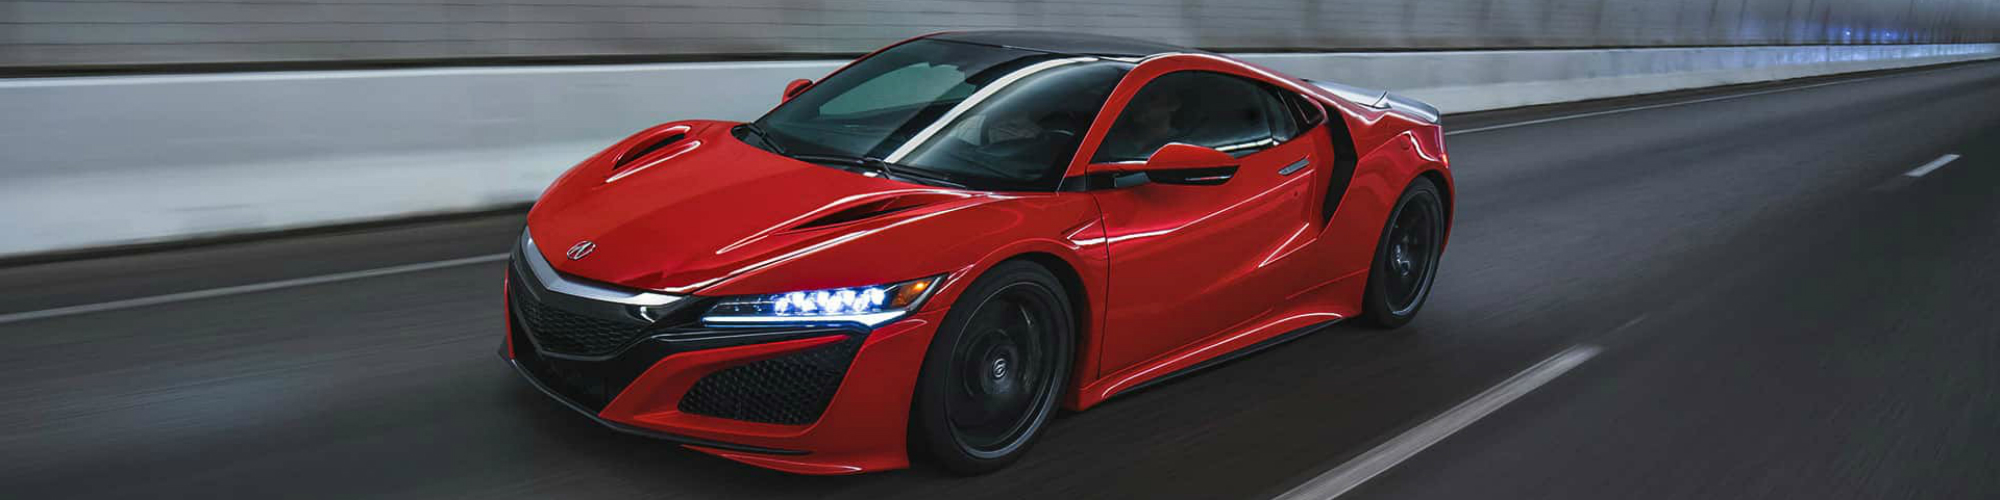 When it debuted at the 1989 Chicago Auto Show, Honda's latest car, the NSX (marketed in North America as the Acura NSX), took the world of exotic cars by storm. It was the first mass-produced car to feature an all-aluminum body and utilized advanced aerodynamics that gave the car a look and style that more closely resembled an F-16 fighter jet. The fan favorite mid-engine sports car was the marquee piece in Honda's lineup for 15 years before going out of production in 2005. Thankfully, fans can rejoice as the new NSX is here and it looks even better than ever.